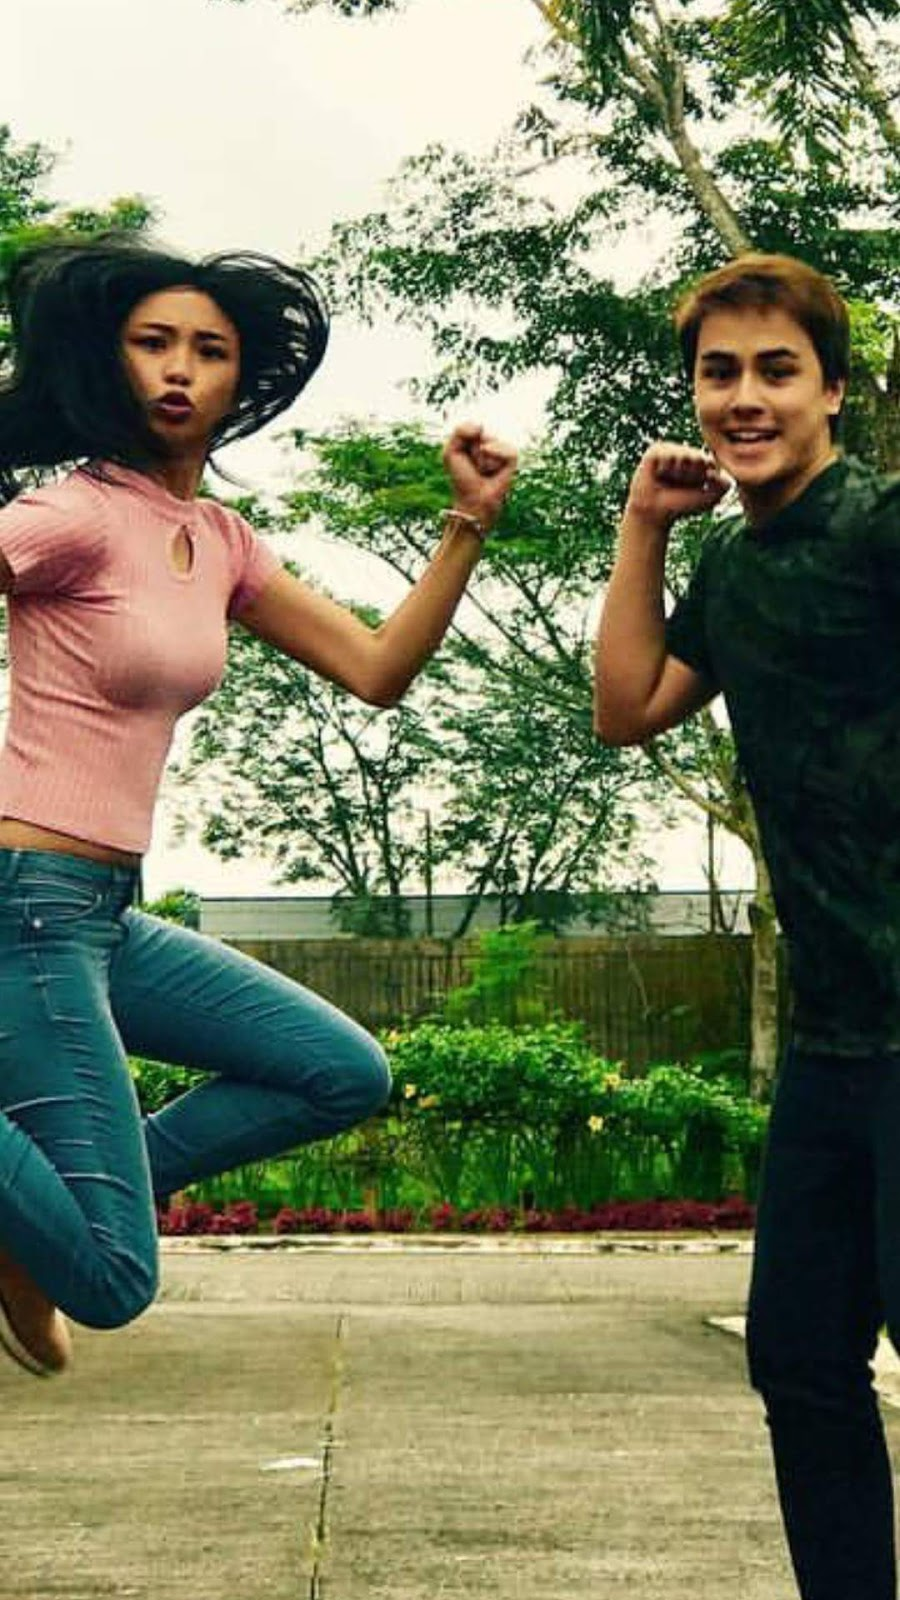 edward asks maymay why is your face more manly than mine